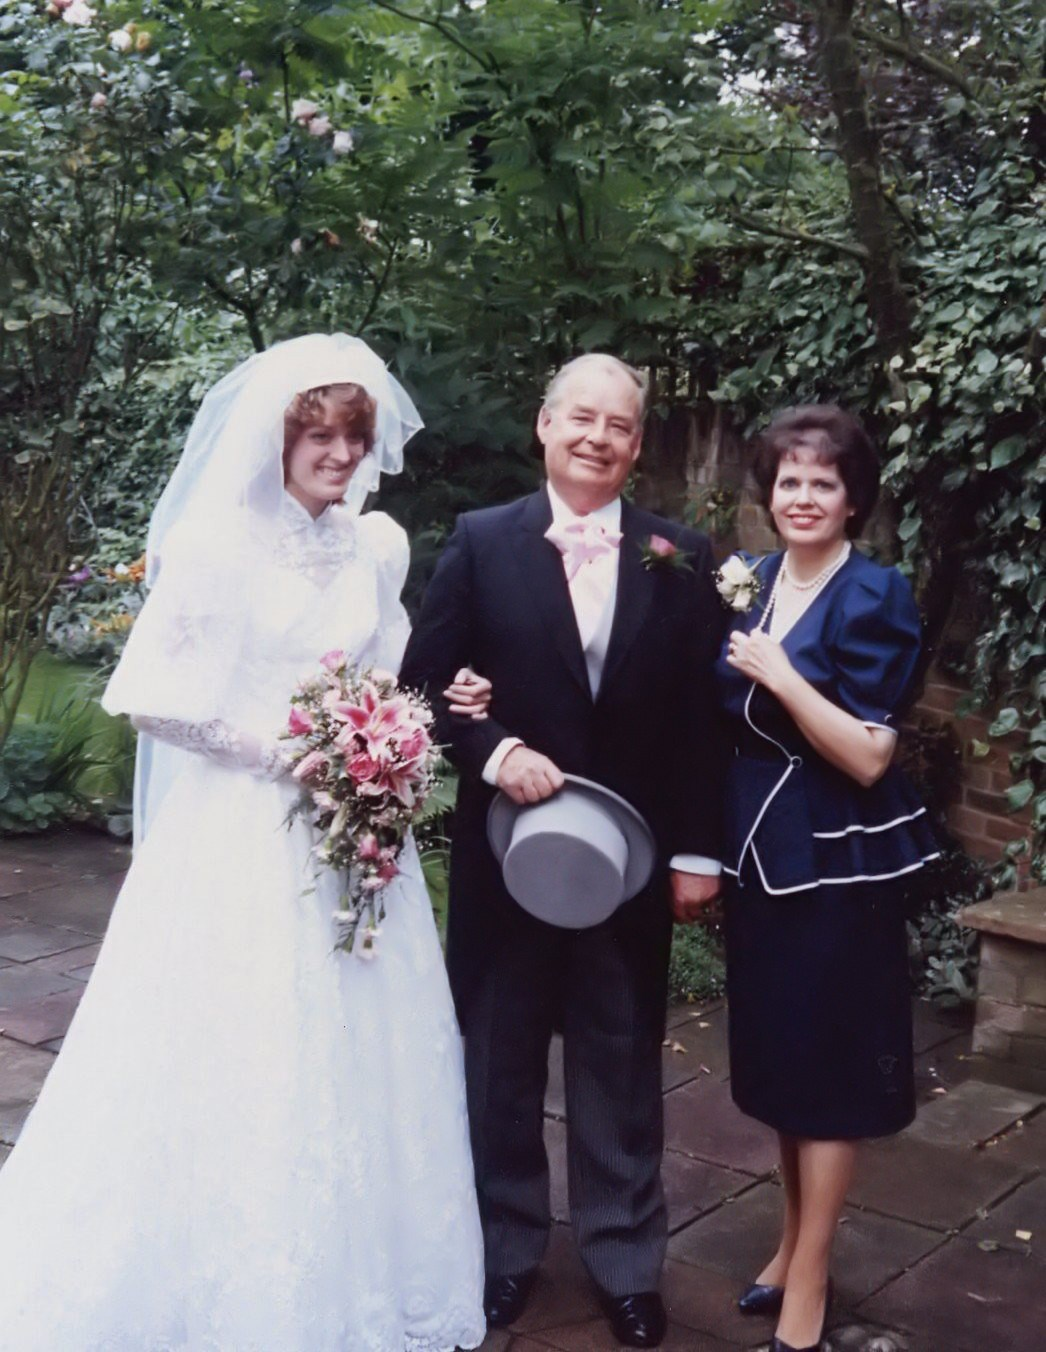 Kates Wedding Day 1987